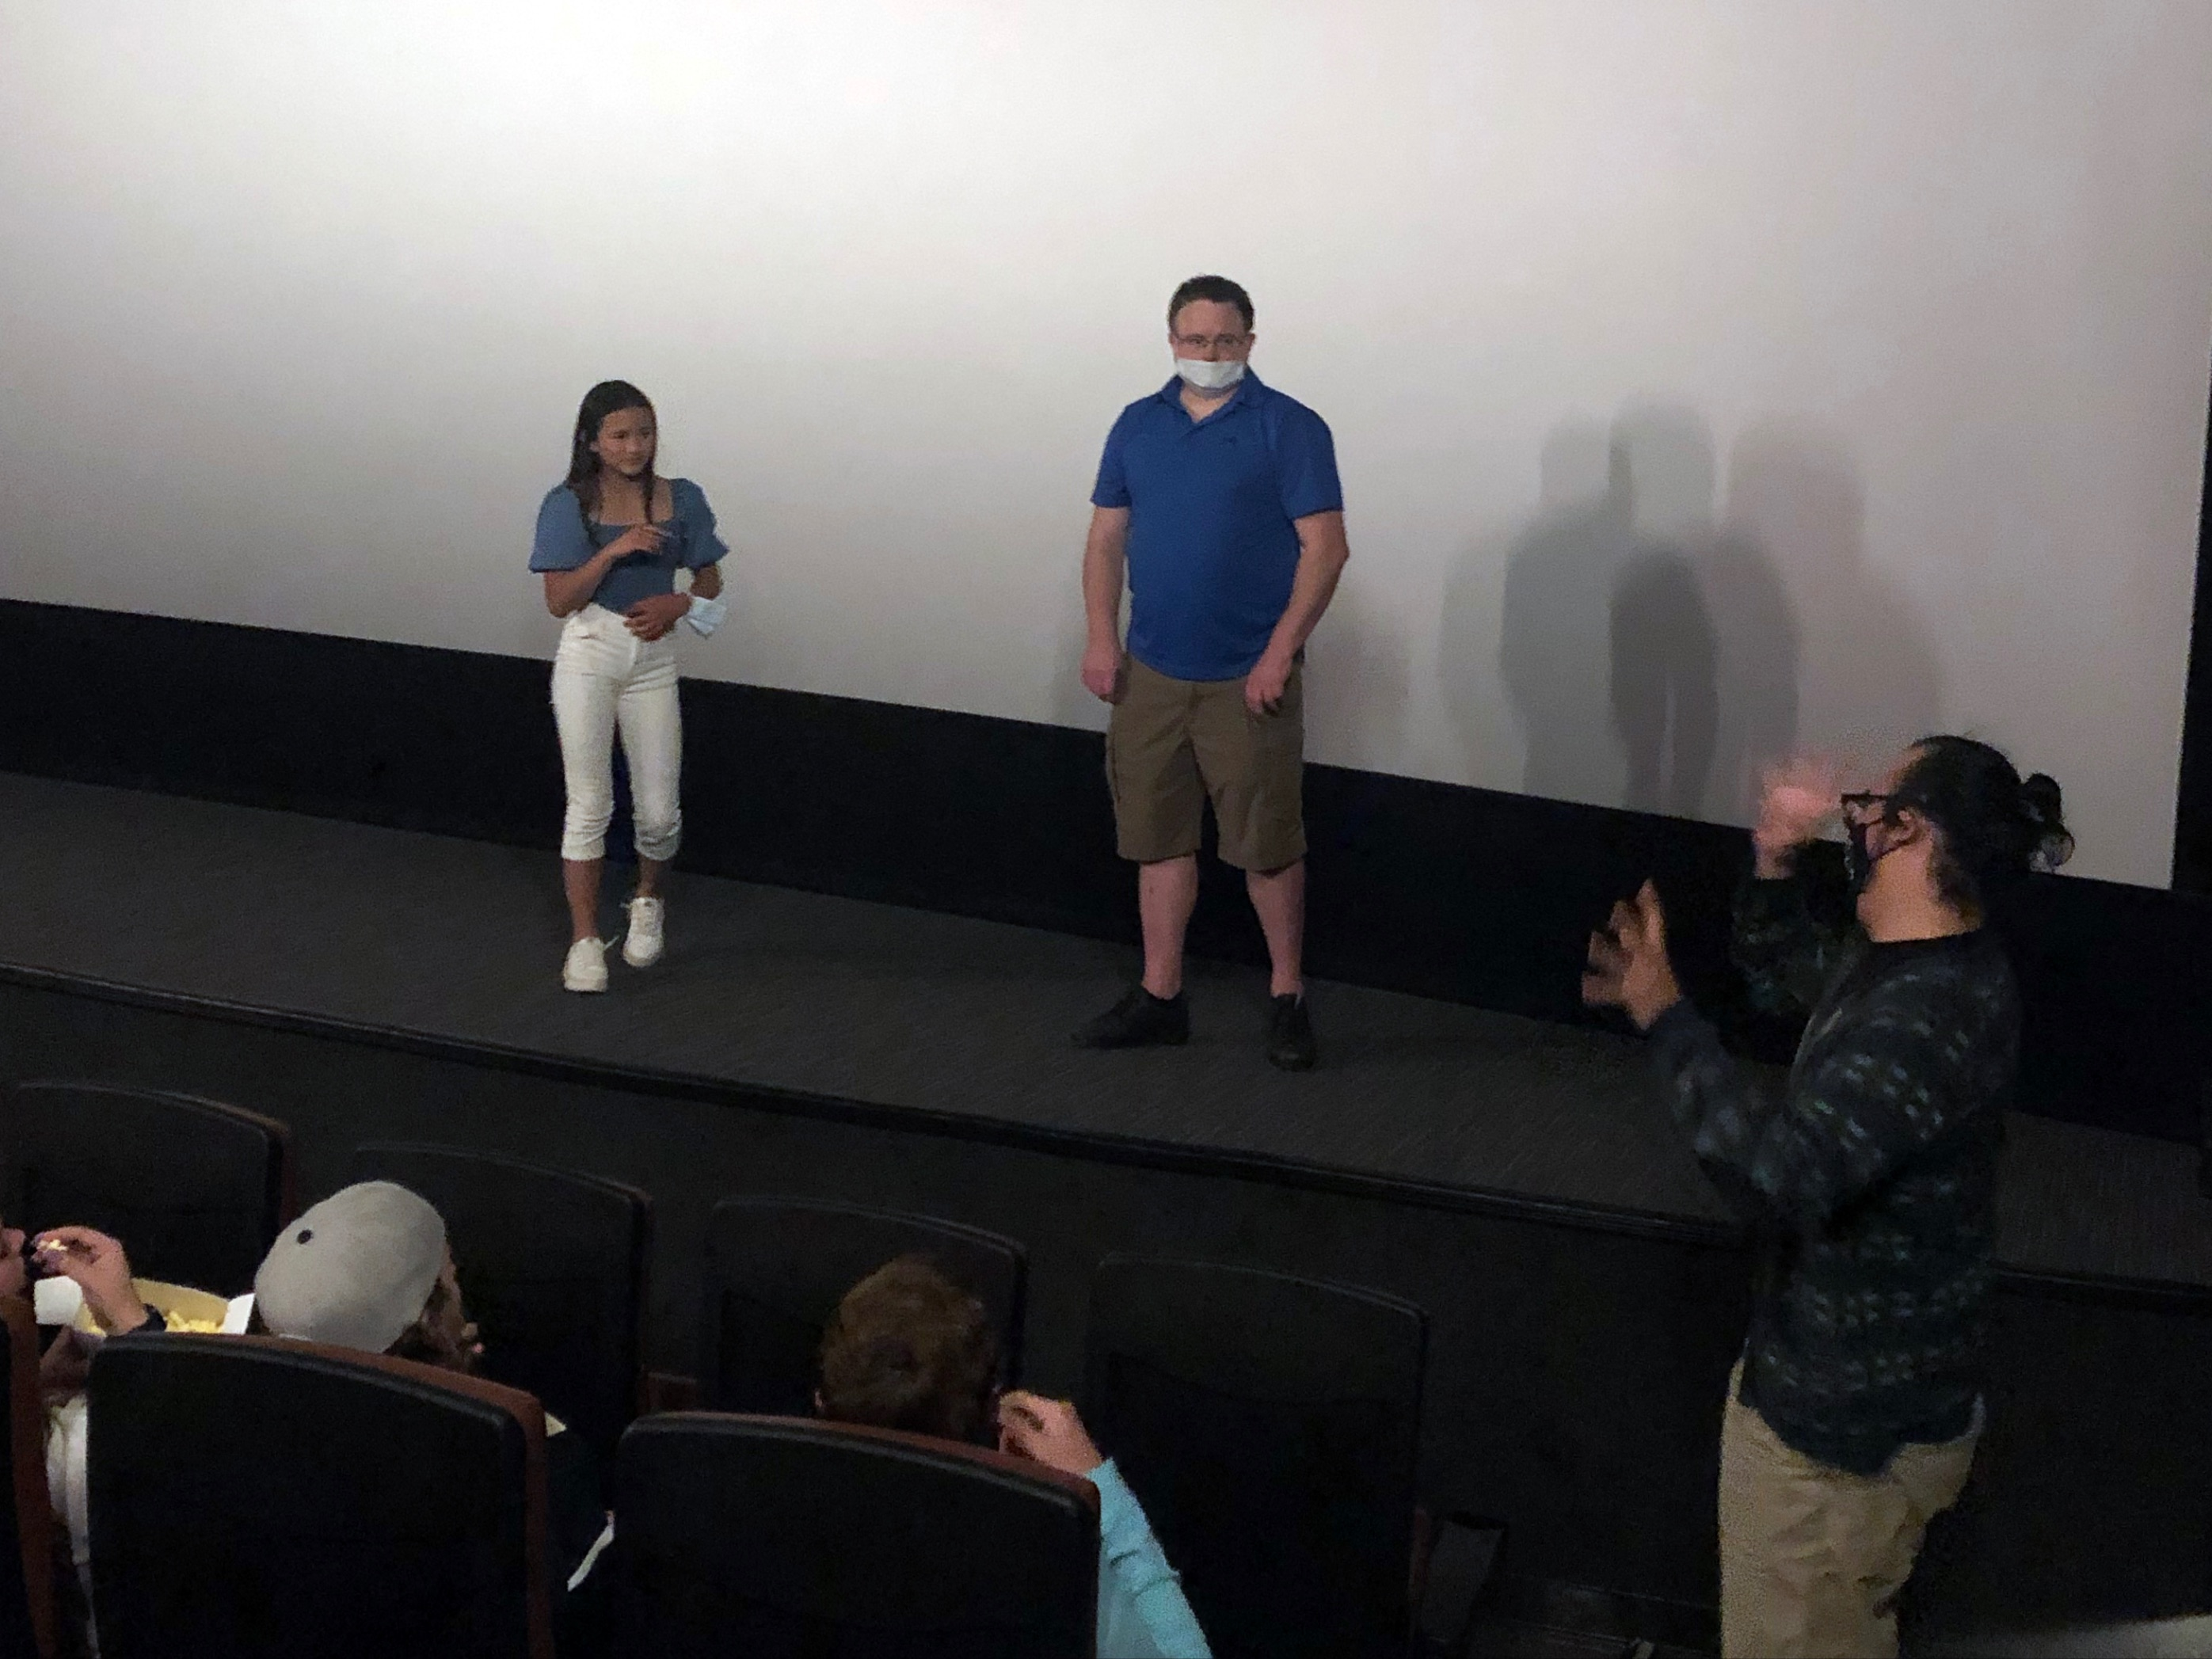 The photo shows Kaylee standing next to her dad Joshua in front of the movie screen at the EVO Entertainment Theater.  There is a man standing off to the side by the first row of movie seats who appears to be asking Kaylee a question.